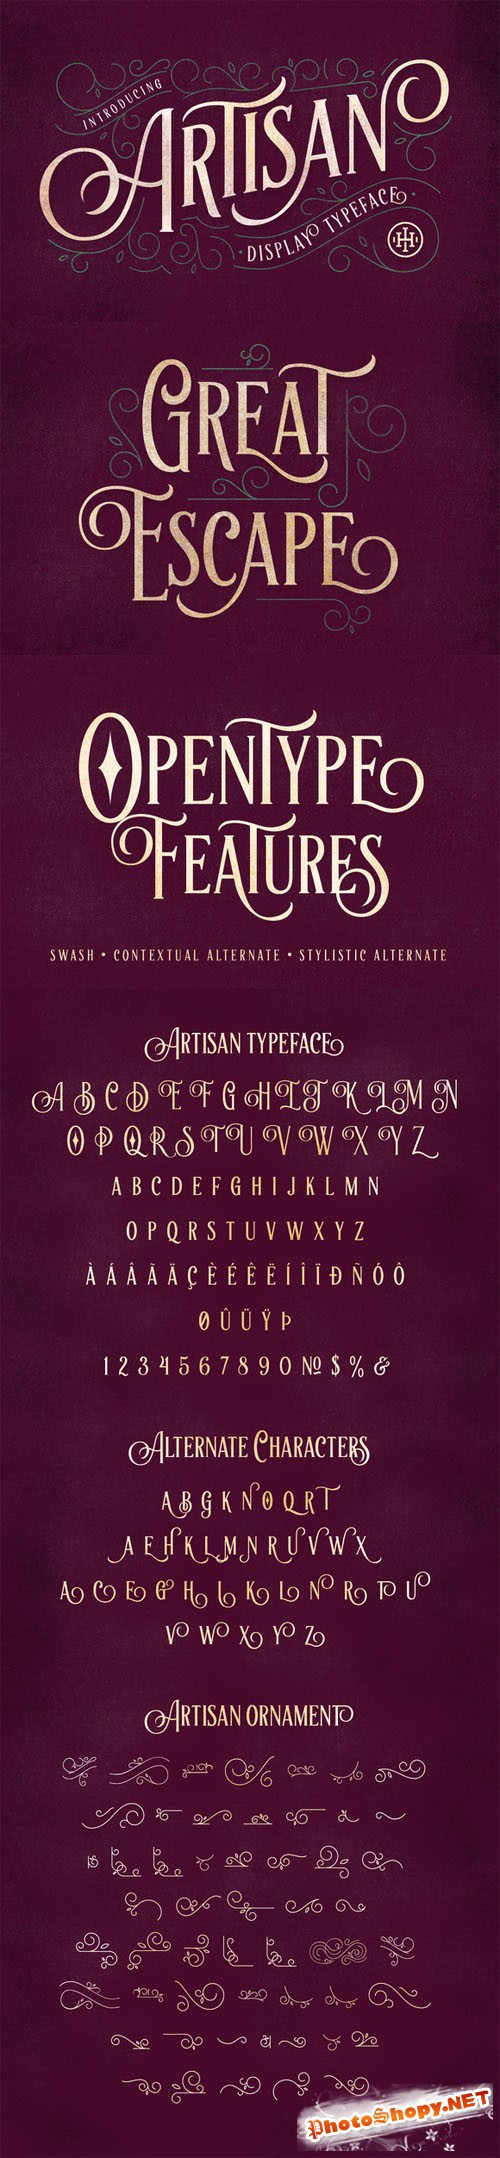 Artisan Display Typeface - Creativemarket 198813